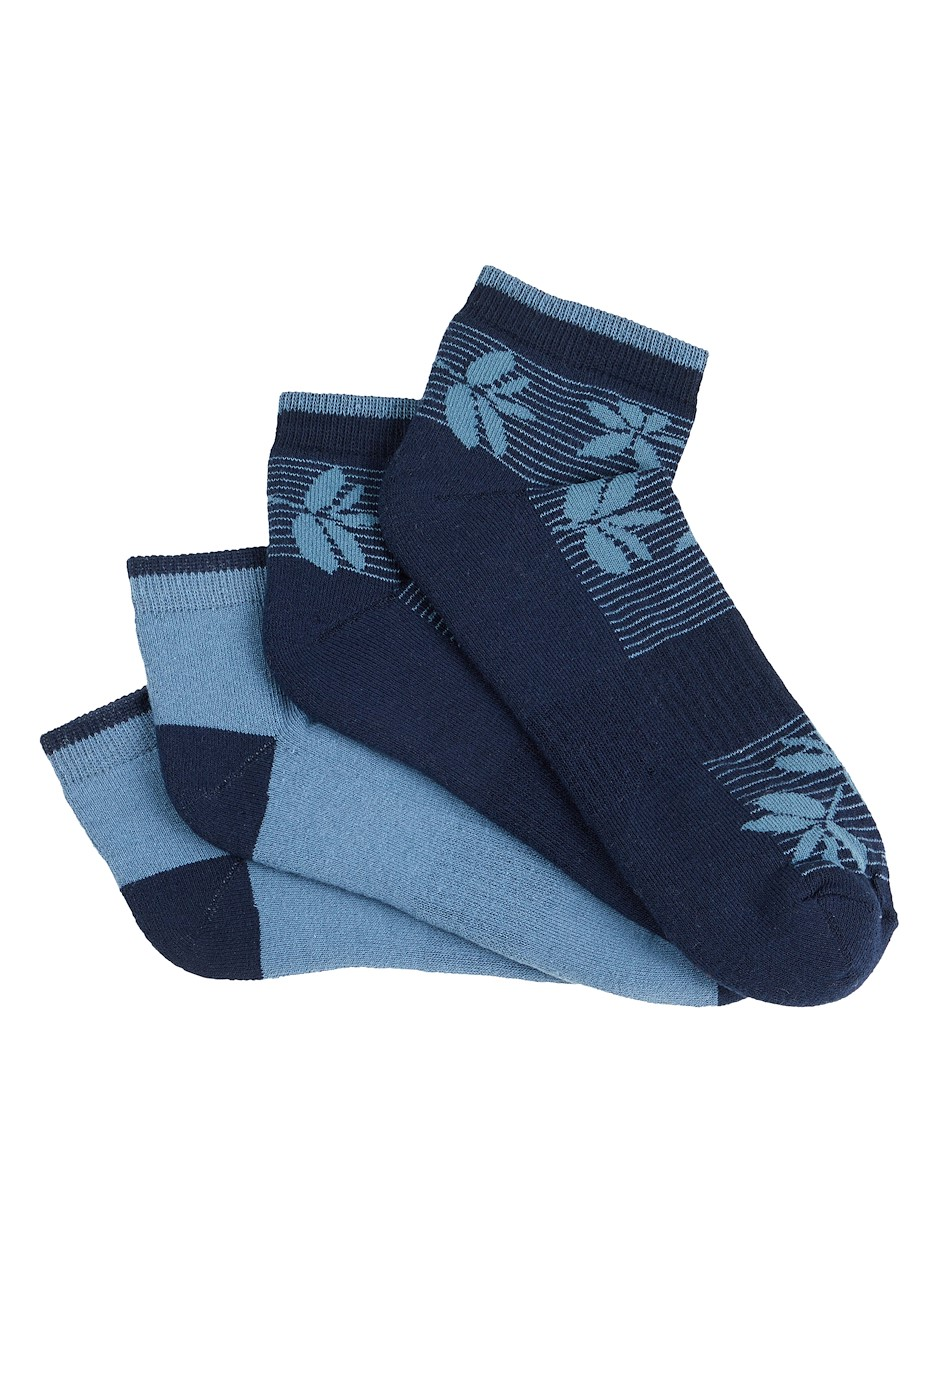 Athea Bamboo Trainer Socks 2 Pack Navy